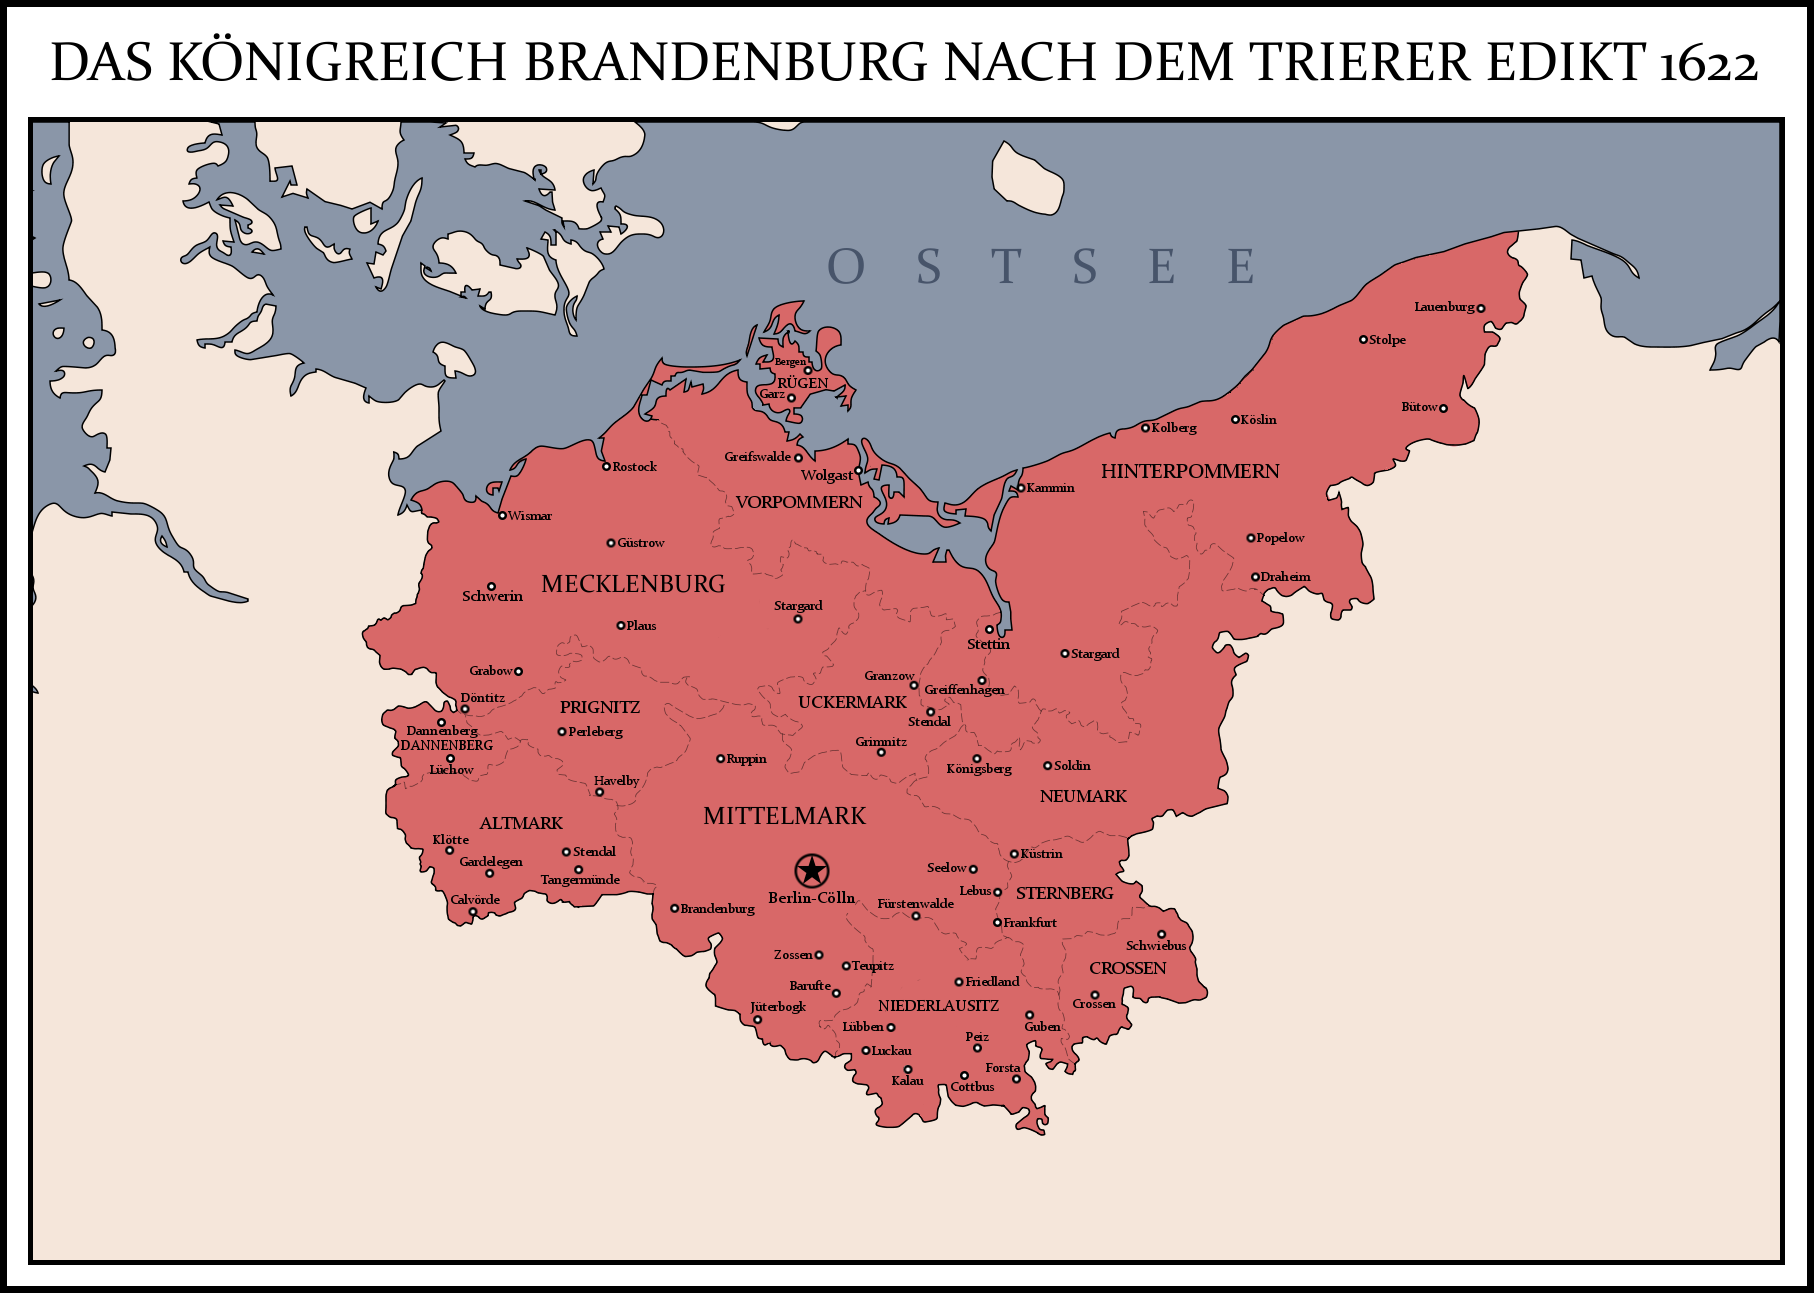 Kingdom of Brandenburg 1622 by Rarayn